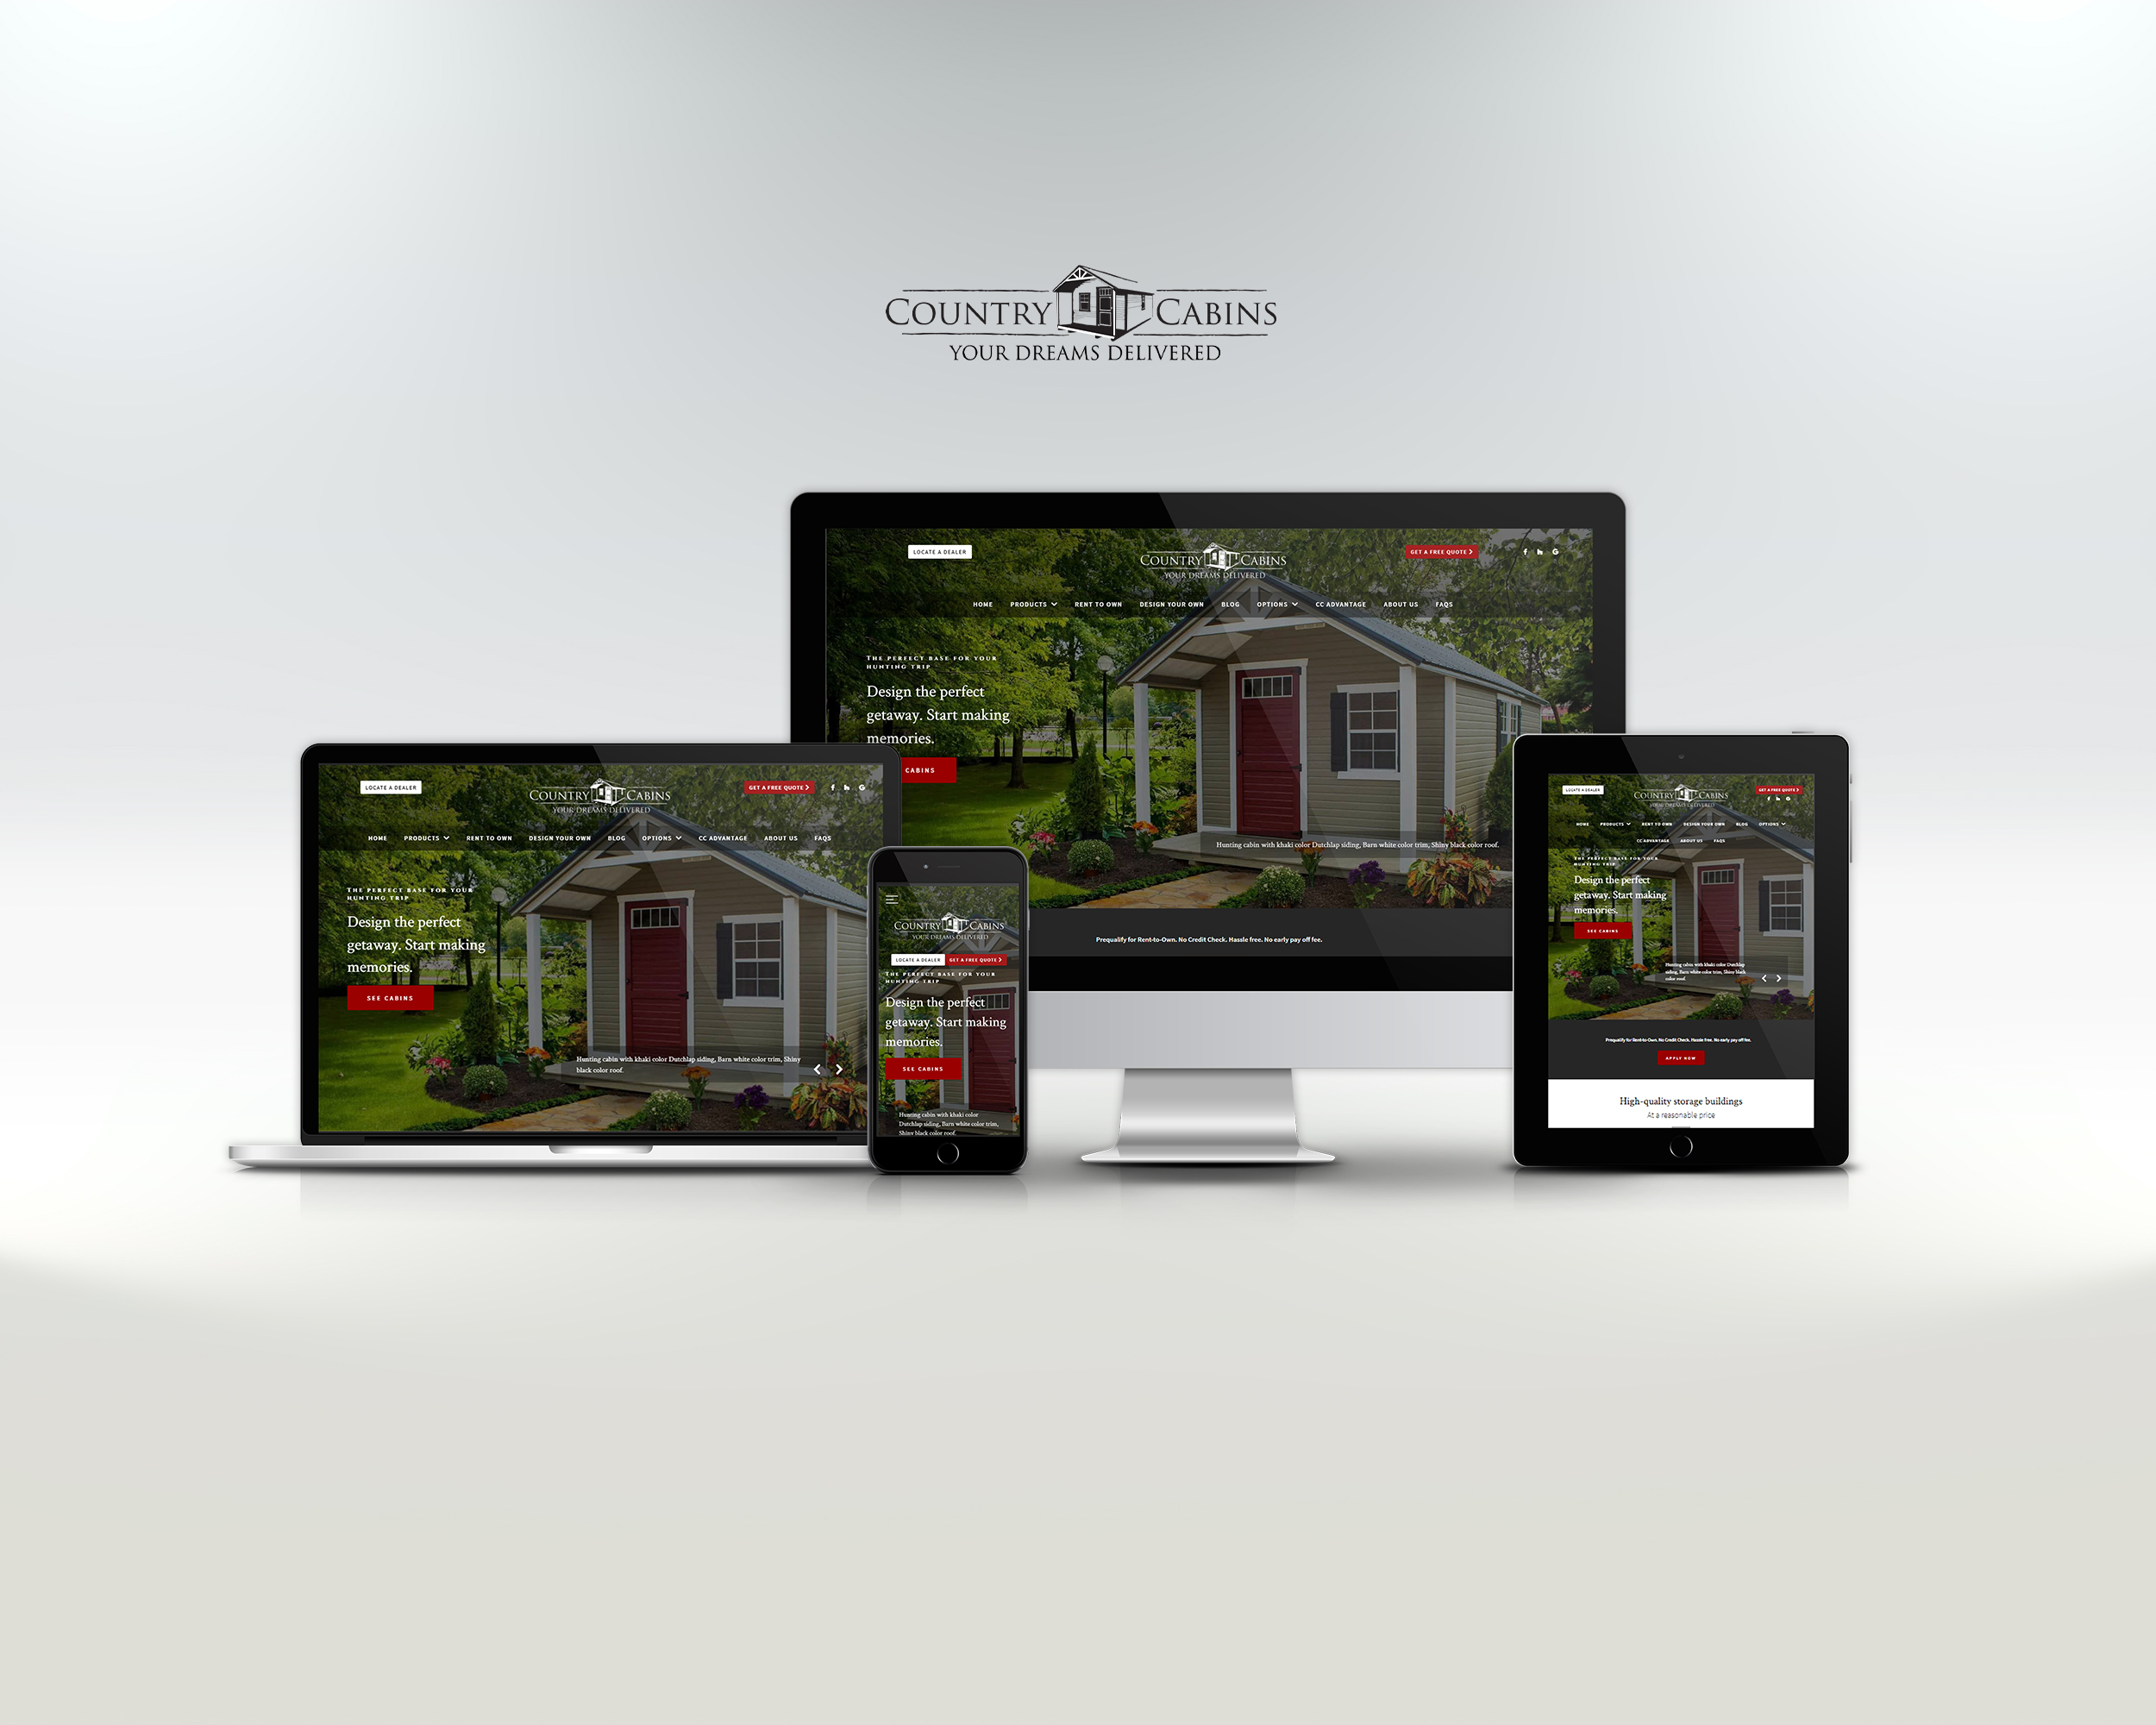 country cabins website displayed on laptop, tablet, and phone